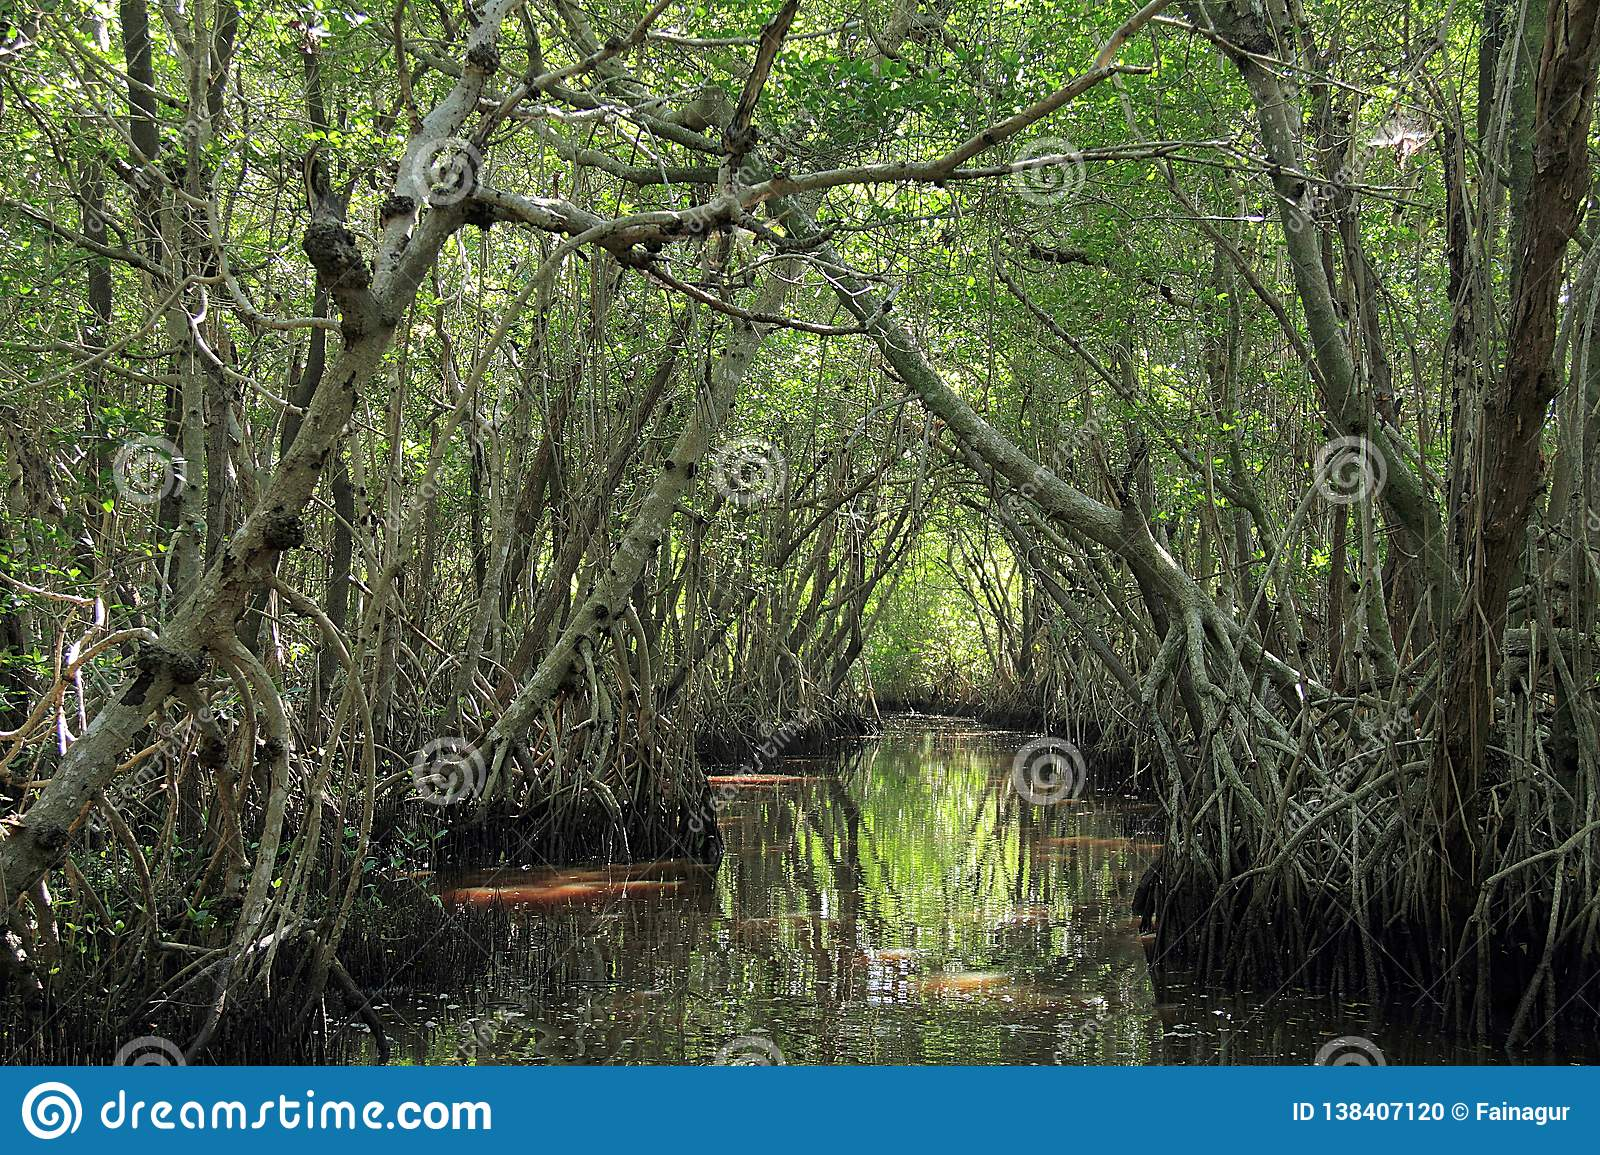 Mangrove trees in Everglades National Park